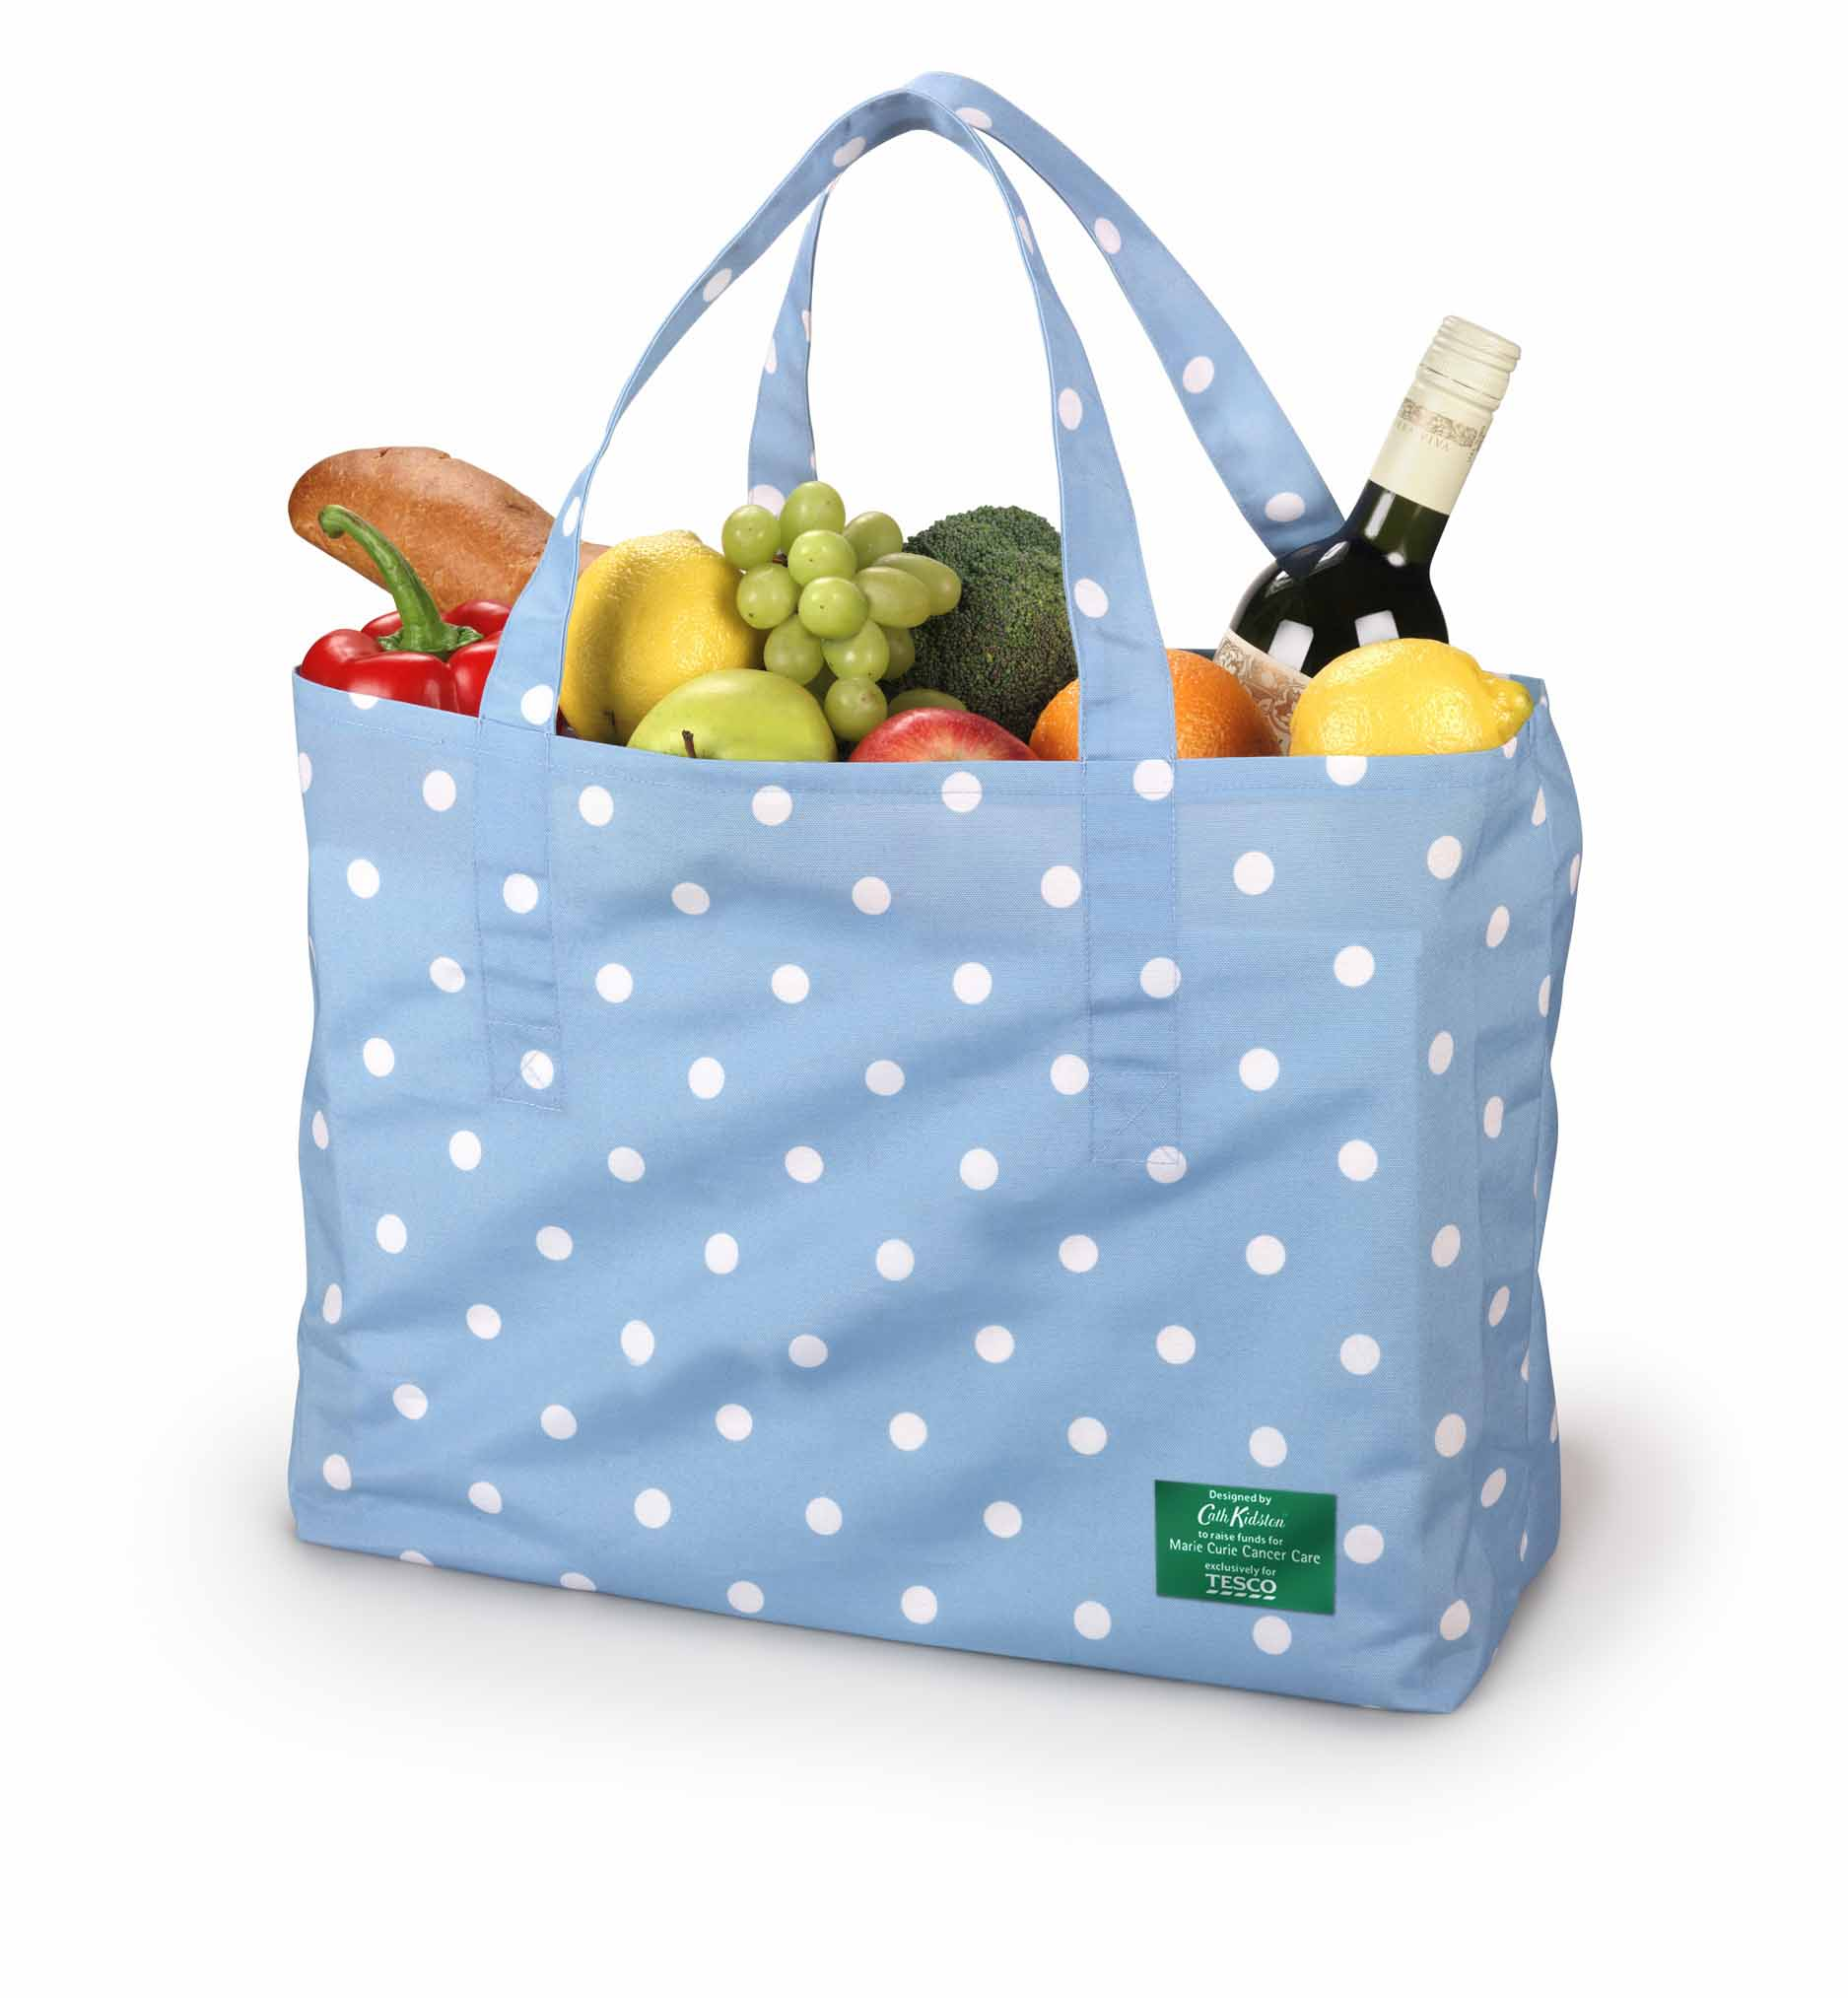 Kidston and Tesco launch eco shopping bag - Marketing Week